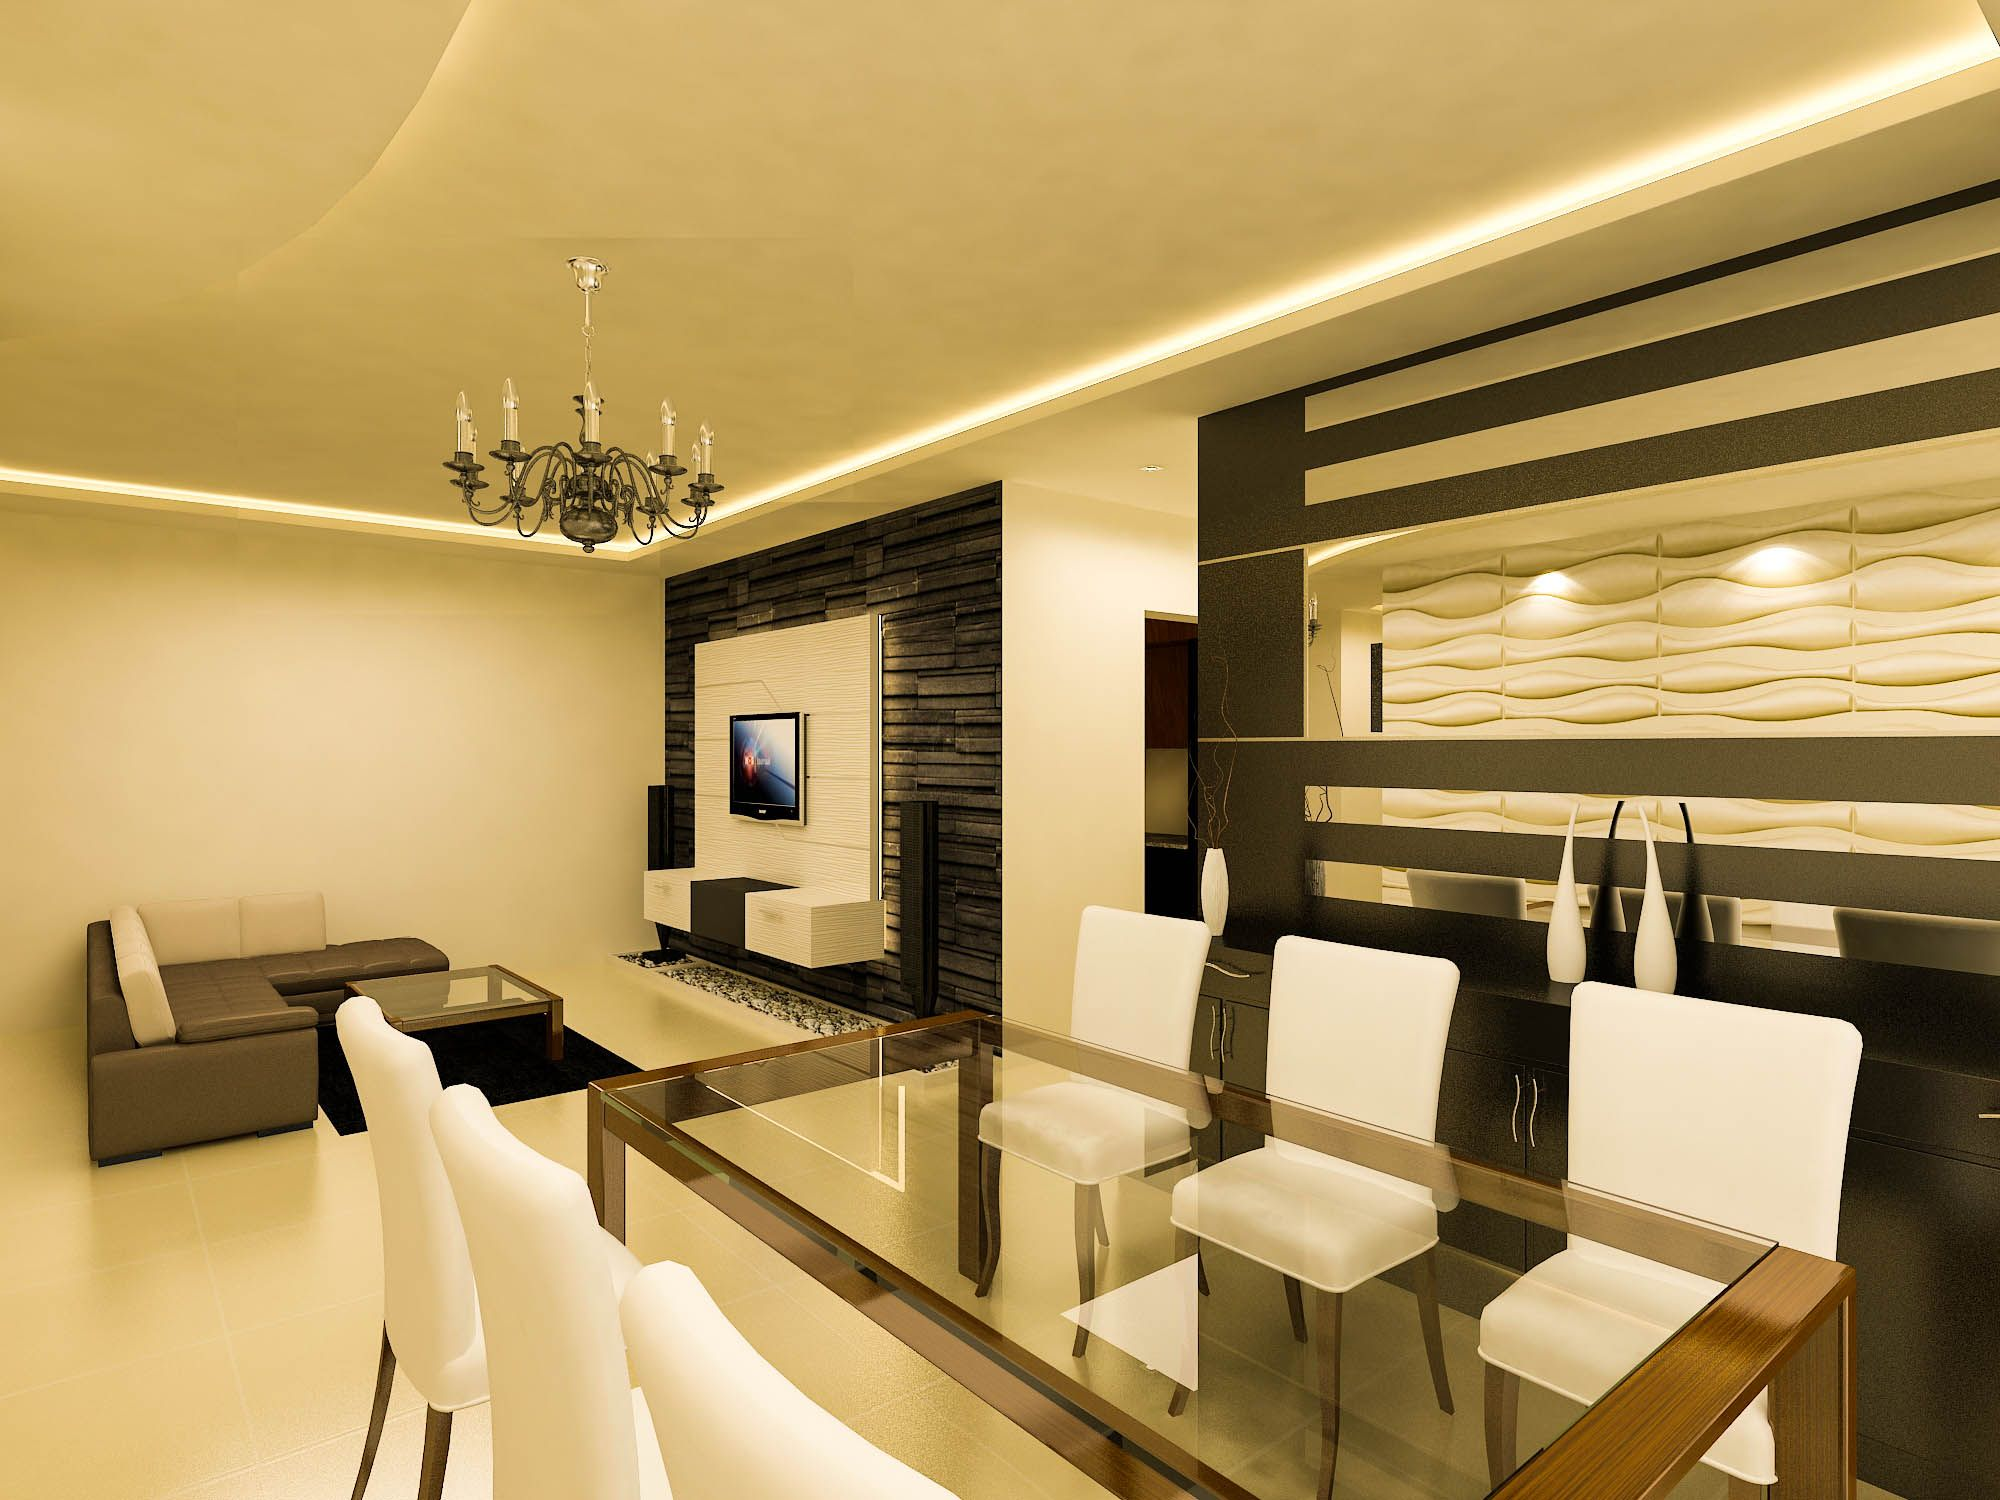 Living Room Designs For Apartments Beauteous A Living Room Design For The Sobha Classic Apartment In Bangalore Review